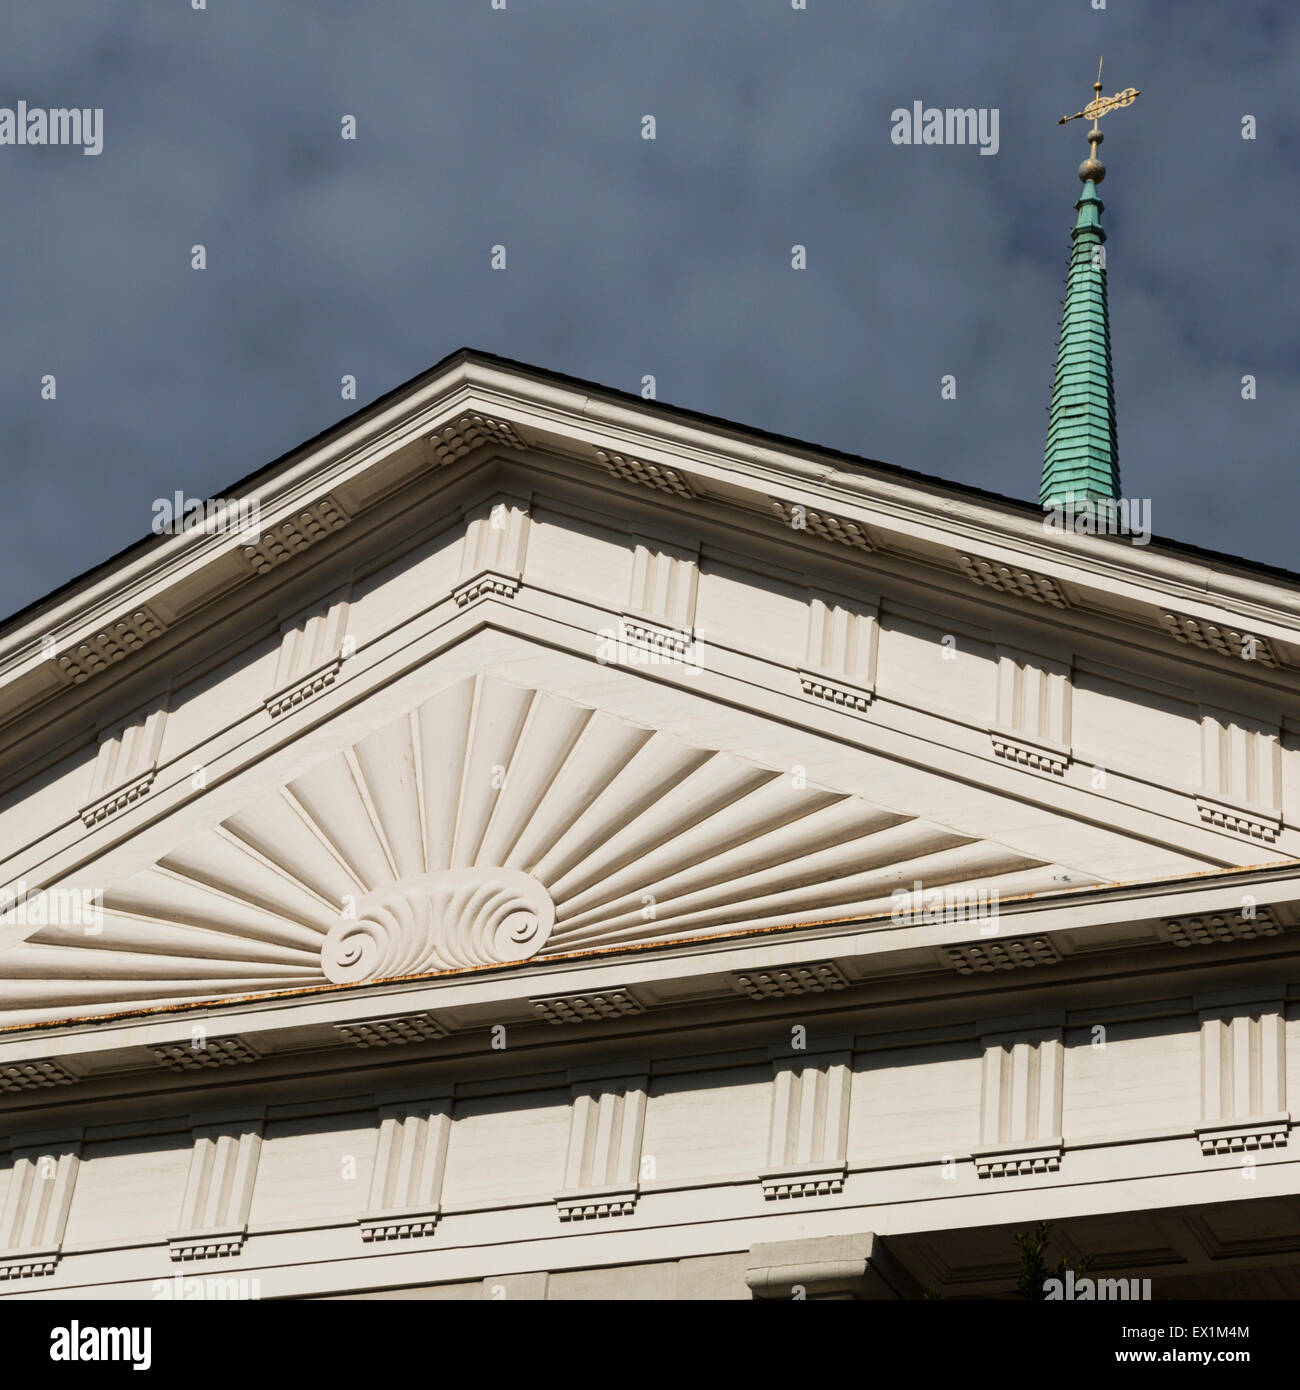 Pediment of Independent Presbyterian Church, Bull St, Savannah, Georgia, USA - Stock Image